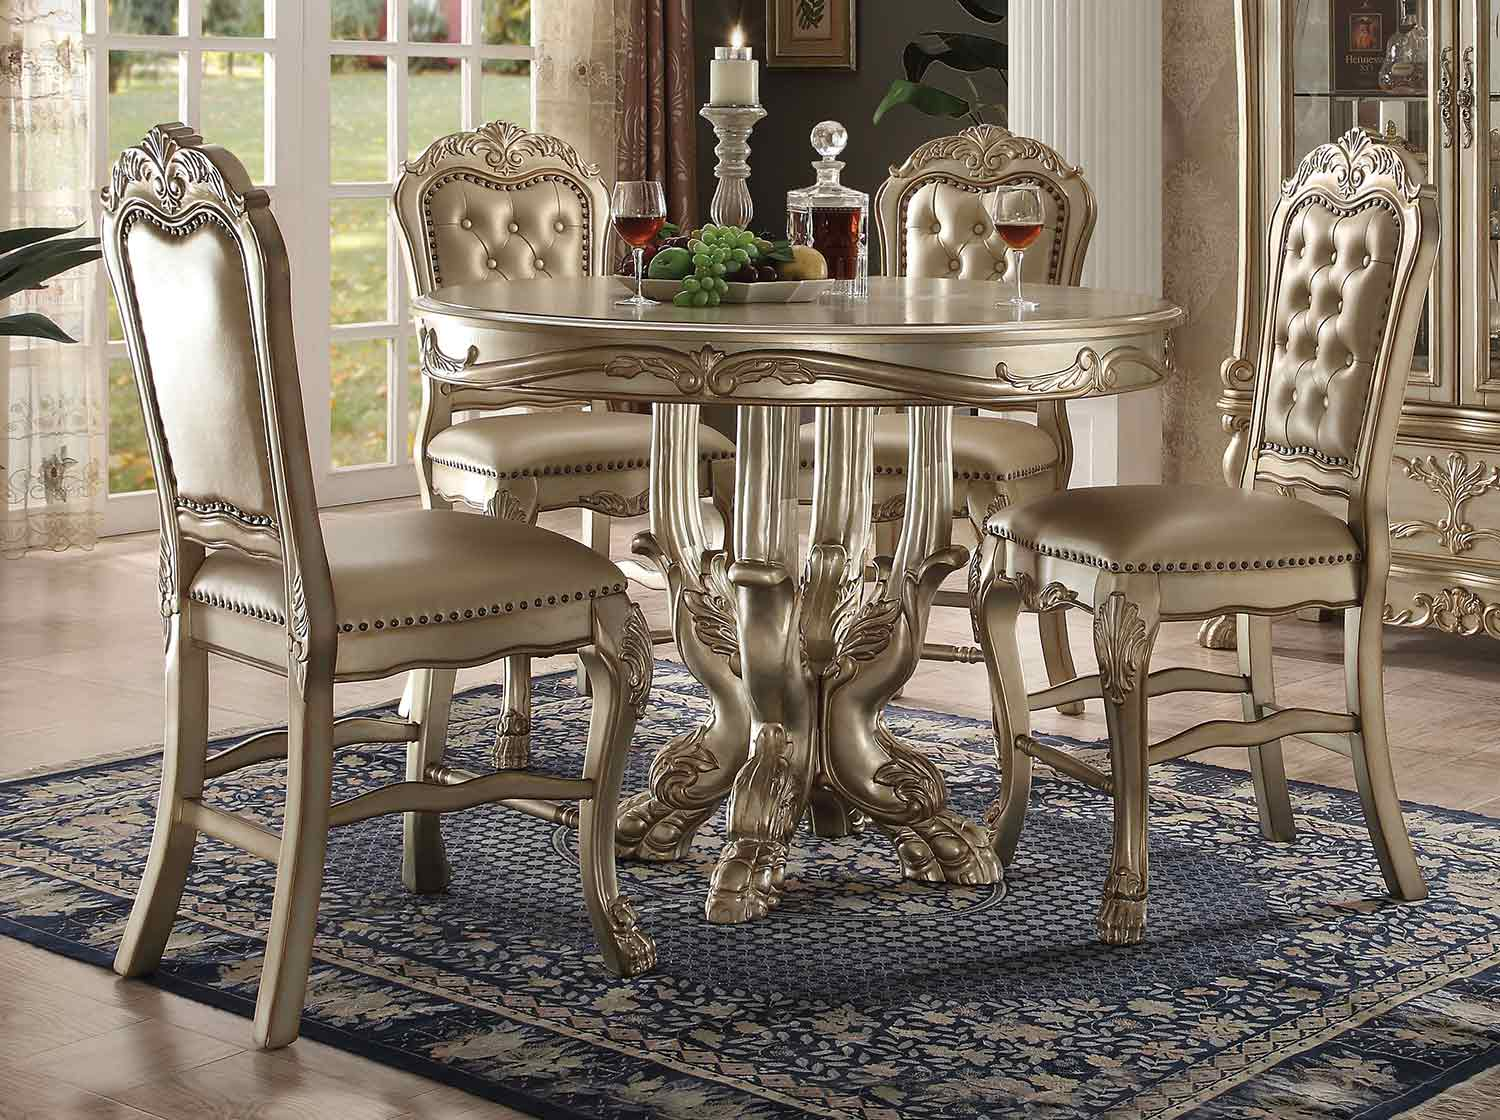 Acme Dresden Counter Height Dining Set - Gold Patina/Bone